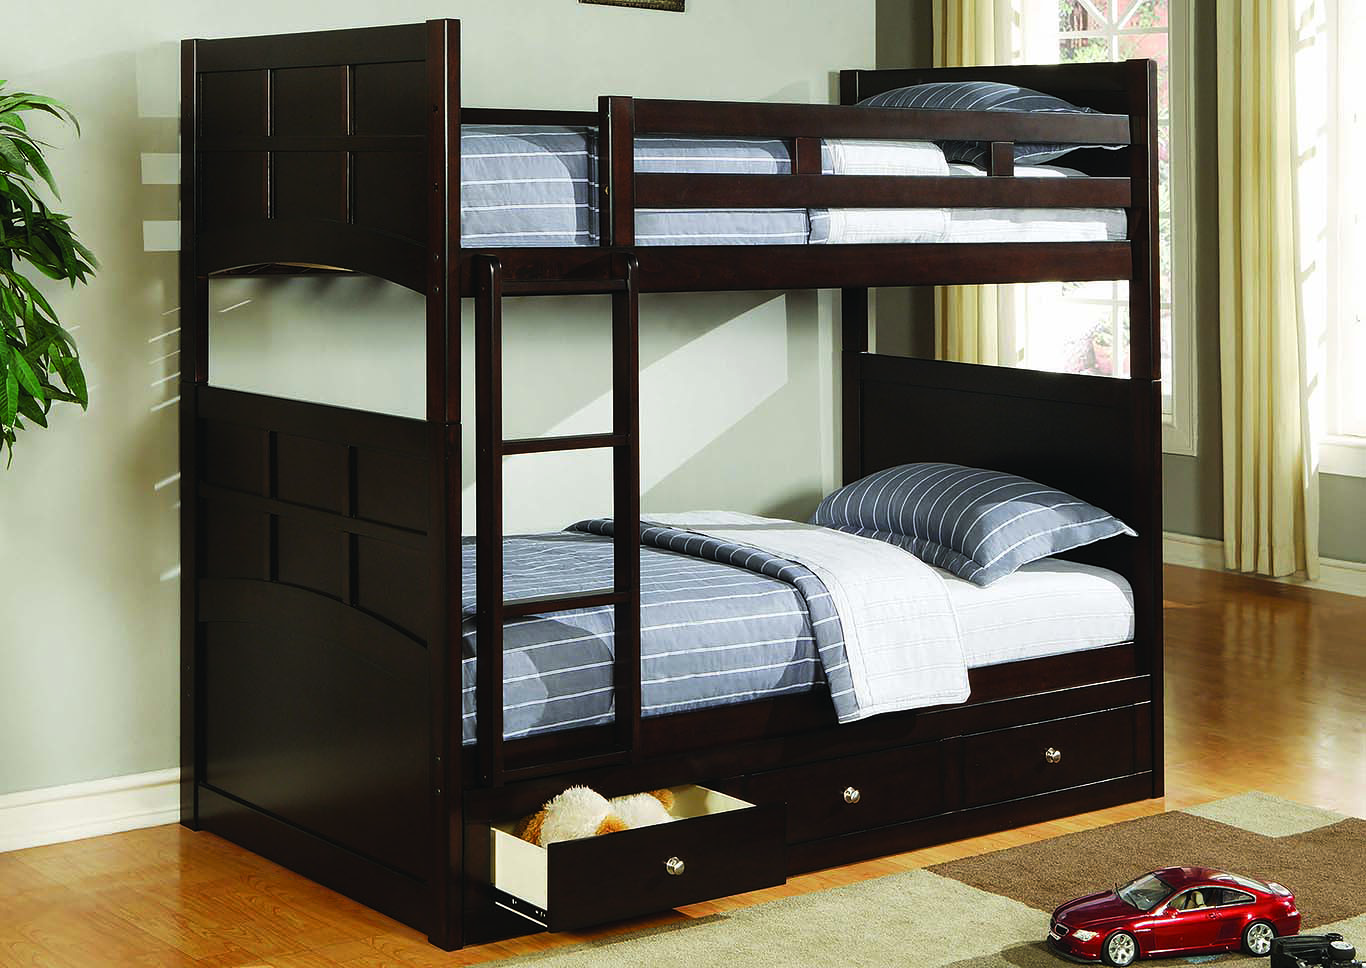 Jasper Cappuccino Twin Bunk Bed W/ Ladder,Coaster Furniture